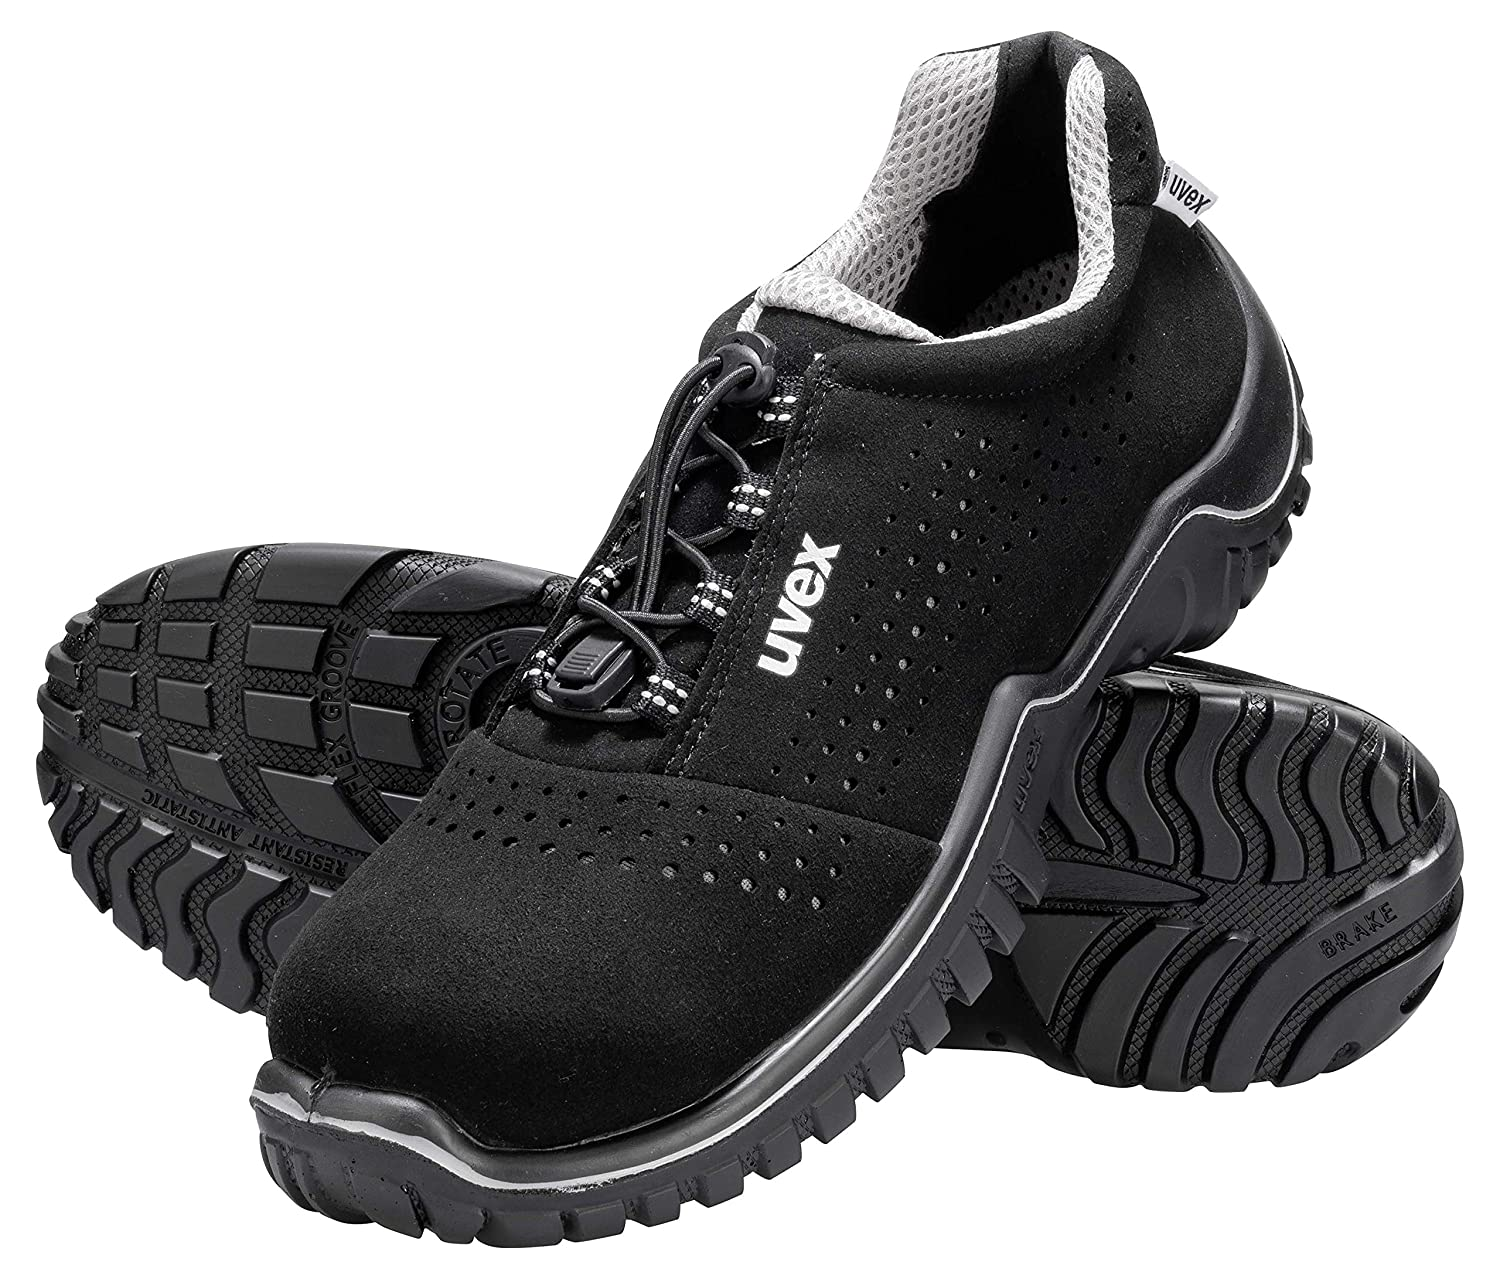 b9f57ccd5f8 Uvex Motion Style S1 SRC Safety Work Trainer - Sporty Steel Toe Cap Shoes,  36 EU Black